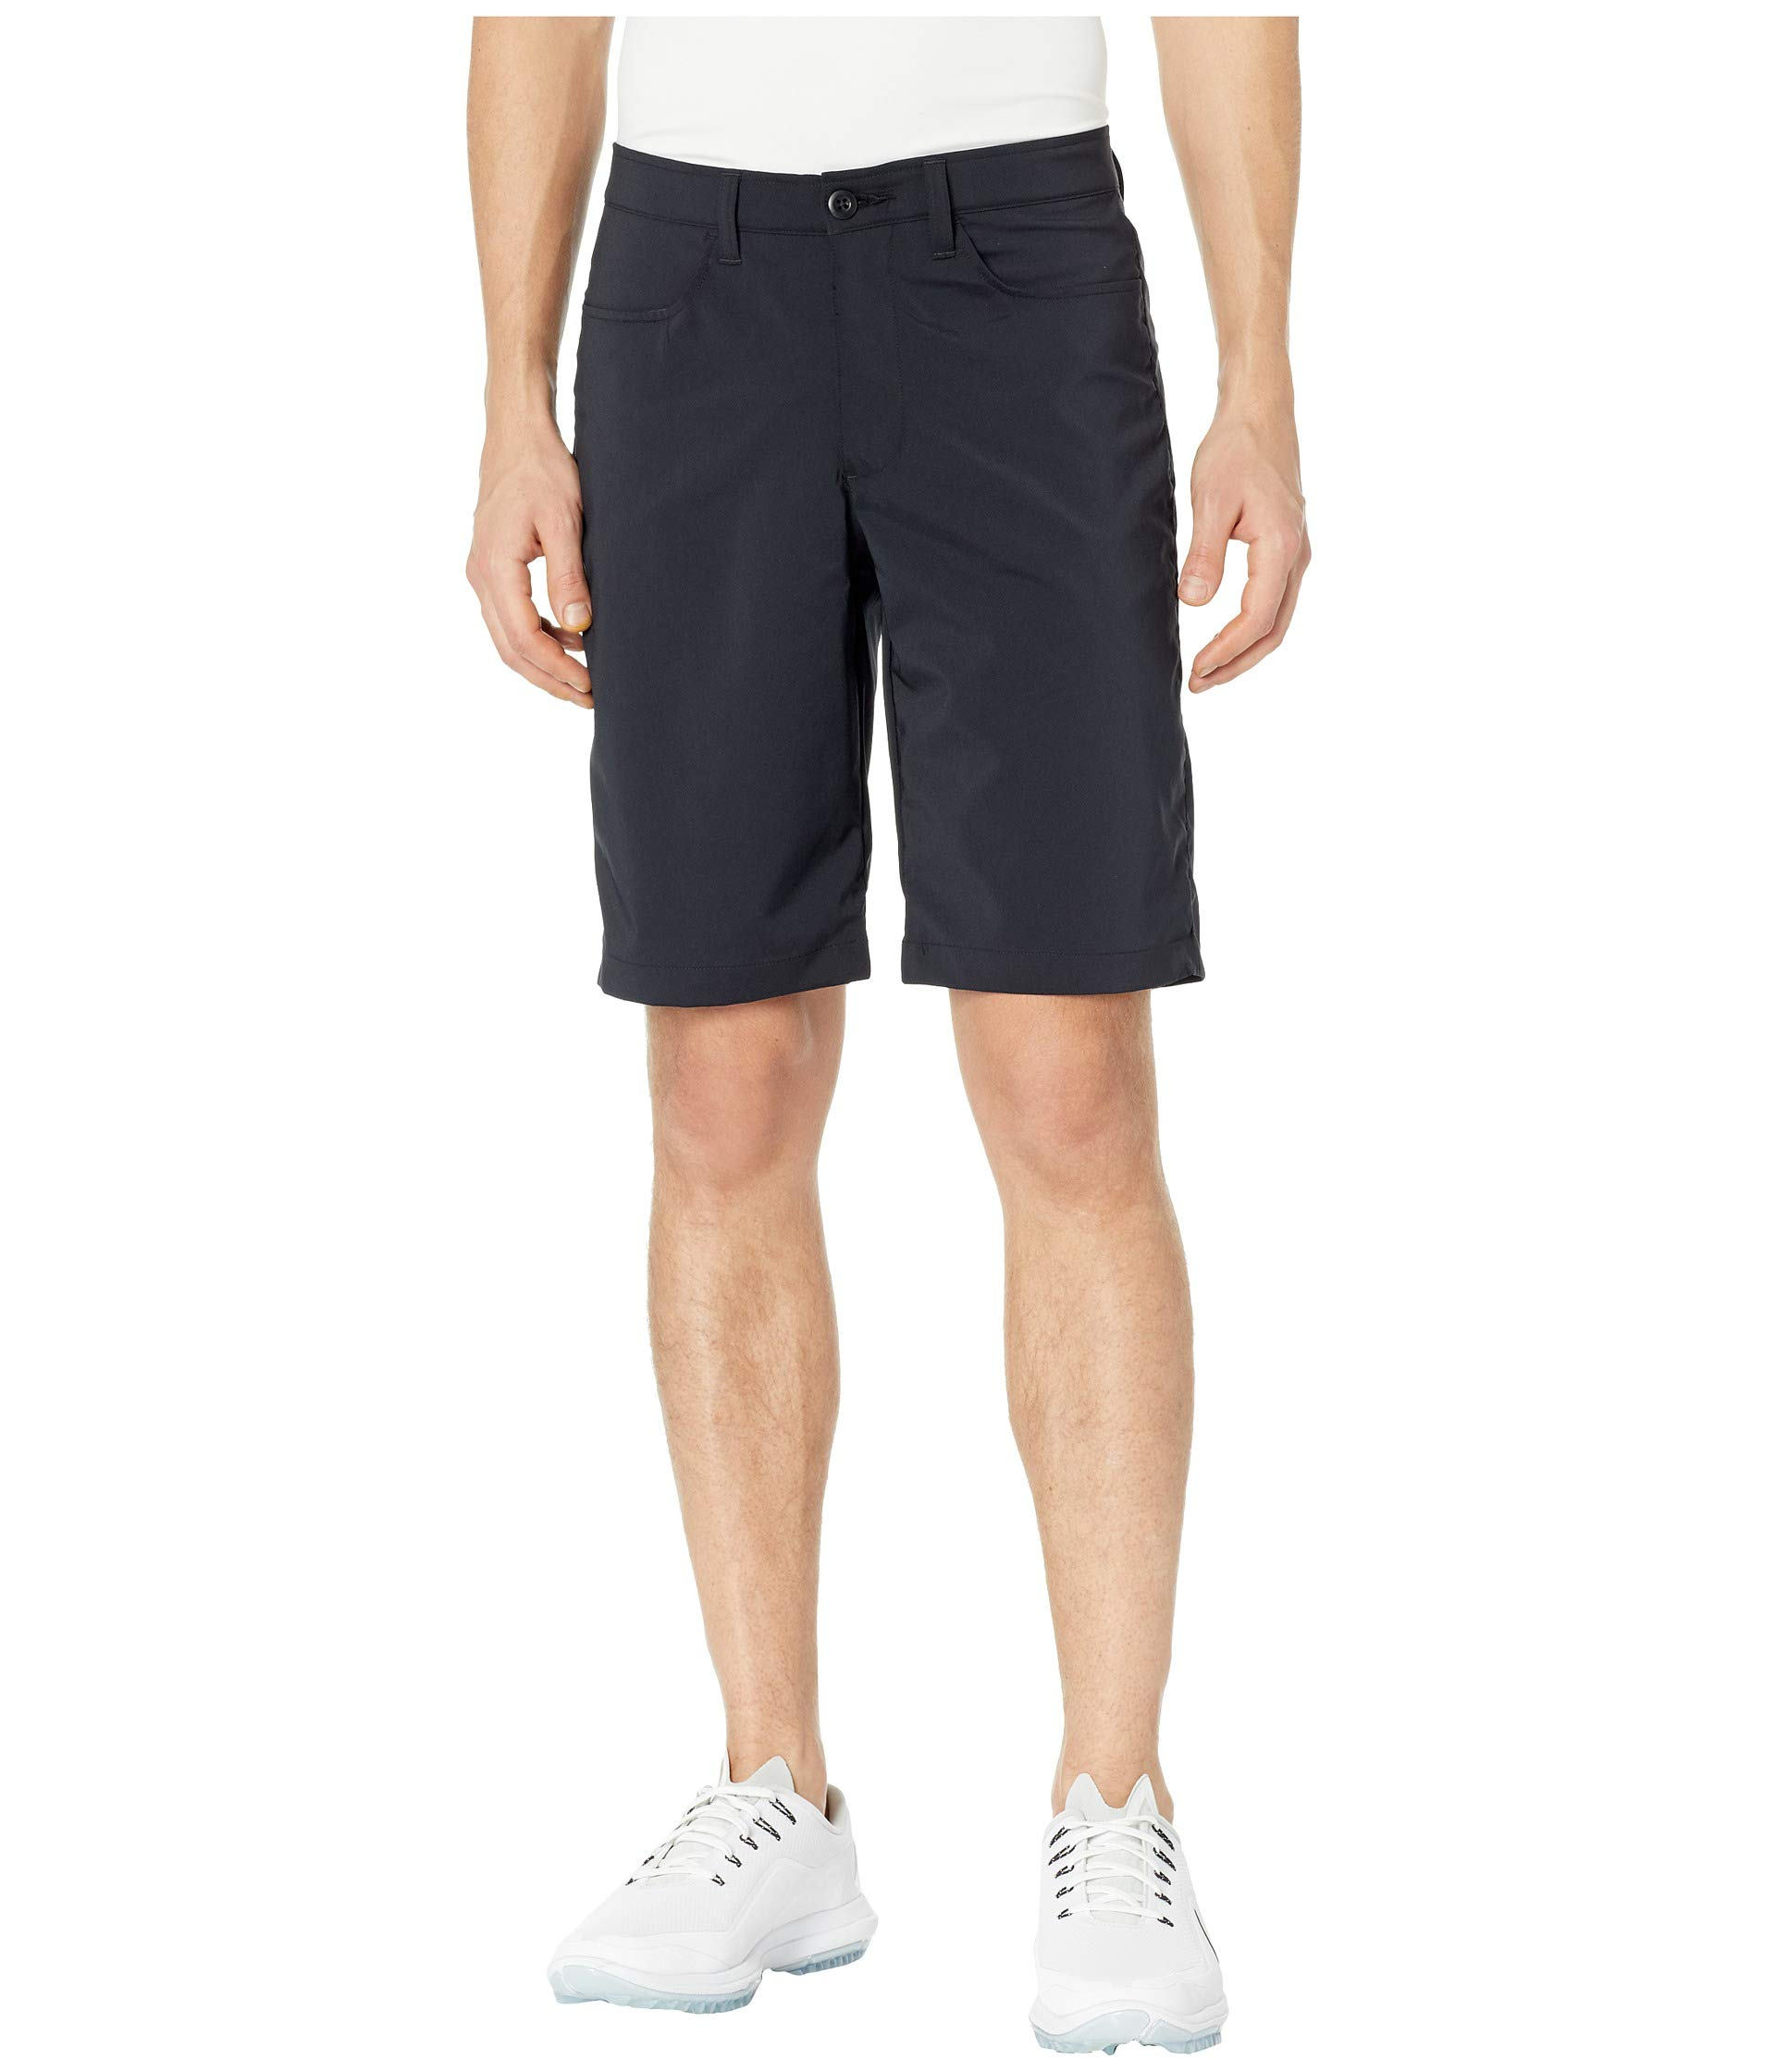 Under Armour Men's Tech Shorts, Black (001)/Black, 34